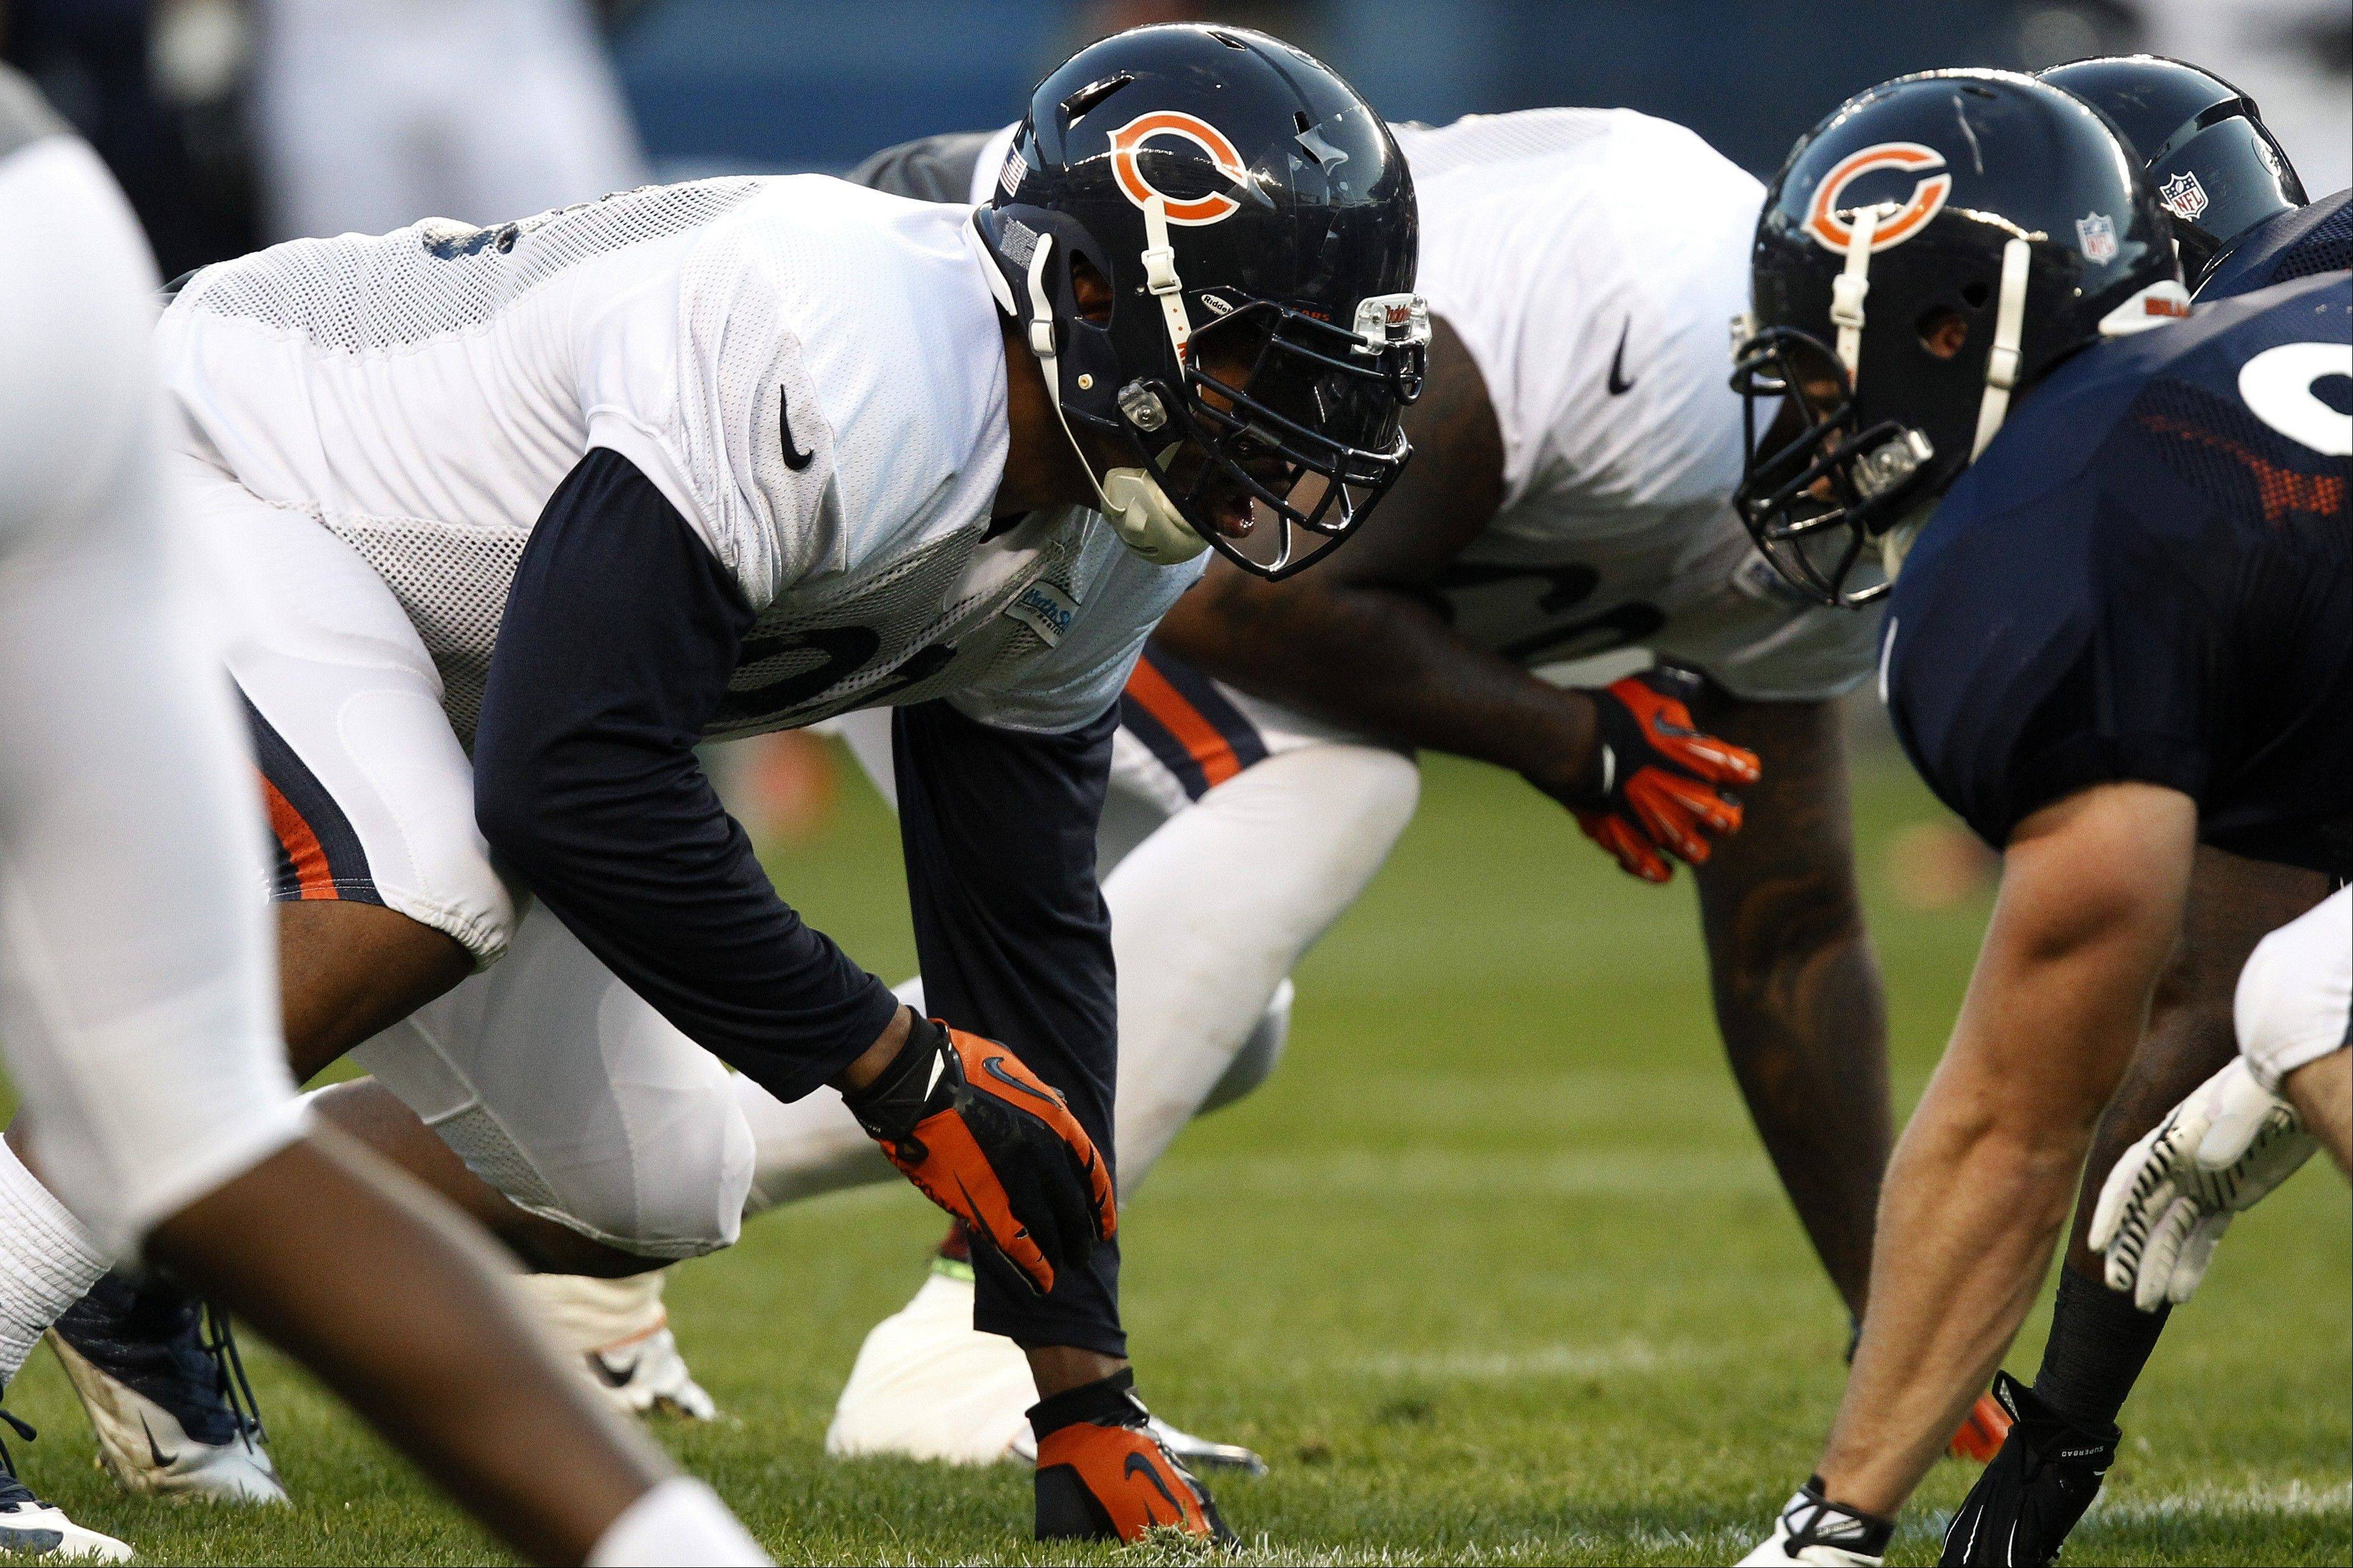 Chicago Bears defensive end Julius Peppers gets into position for a drill during NFL football training camp at Soldier Field in Chicago, Saturday Aug. 3, 2013.